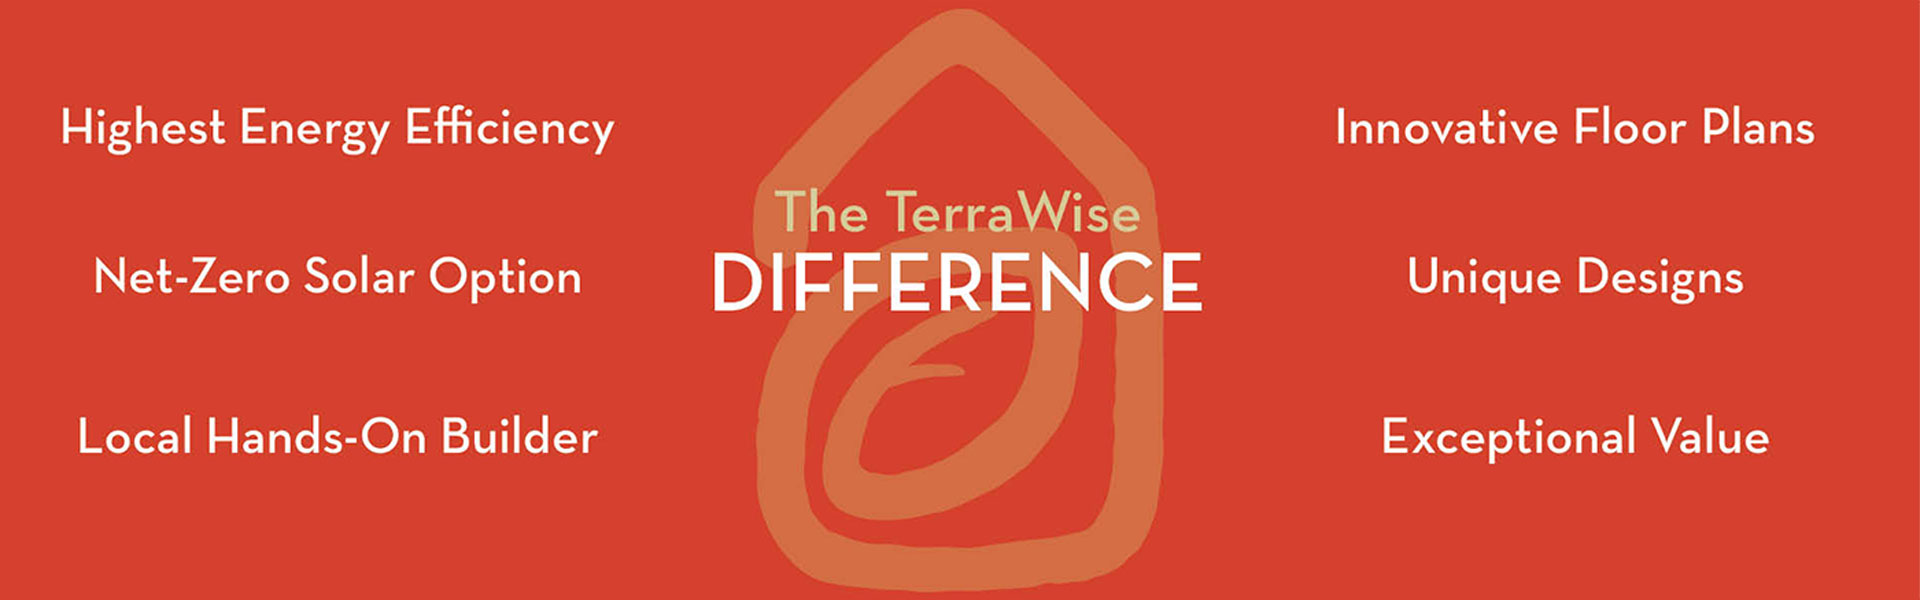 Find out more about what makes TerraWise Homes Different.